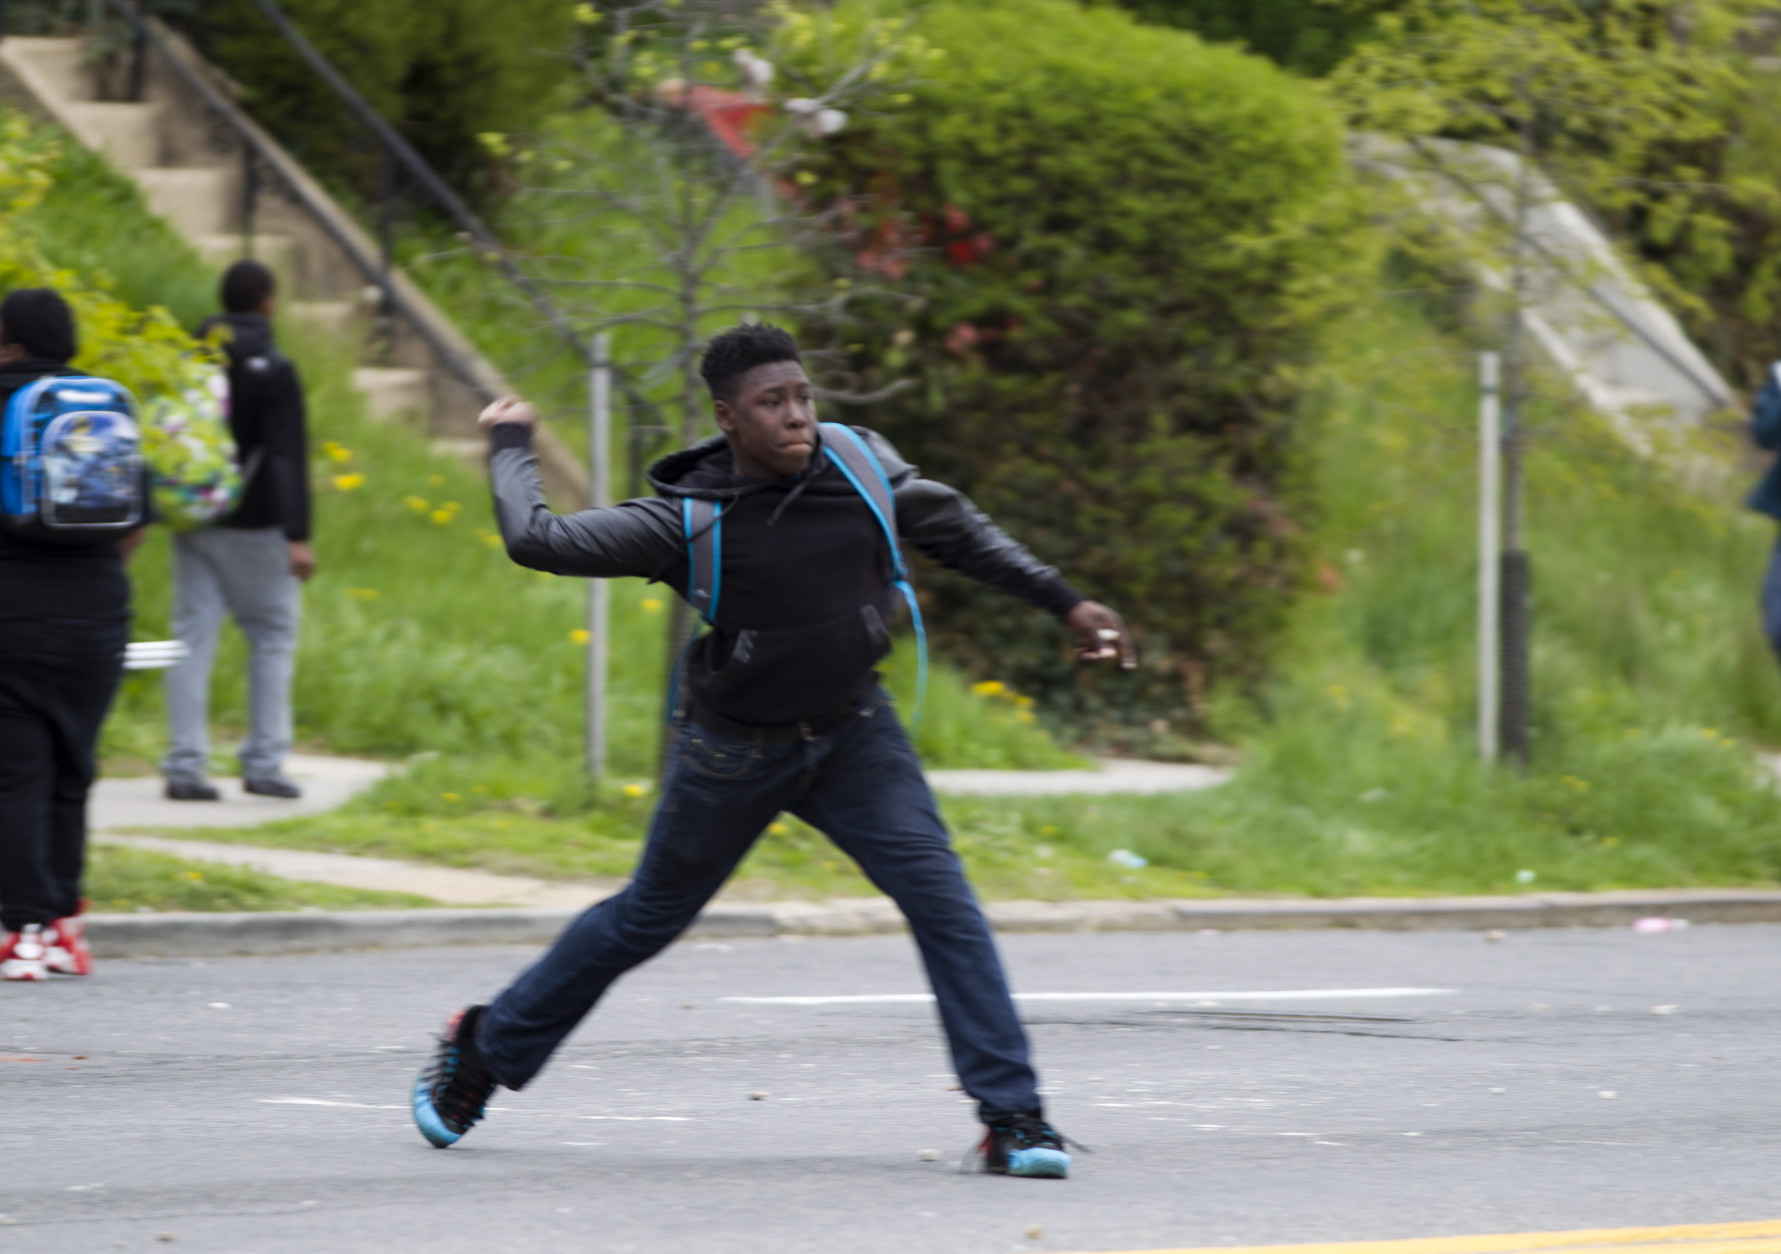 A demonstrator throws a rock at the police after the funeral of Freddie Gray on Monday, April 27, 2015, at New Shiloh Baptist Church in Baltimore. Gray died from spinal injuries about a week after he was arrested and transported in a Baltimore Police Department van. (AP Photo/Jose Luis Magana)